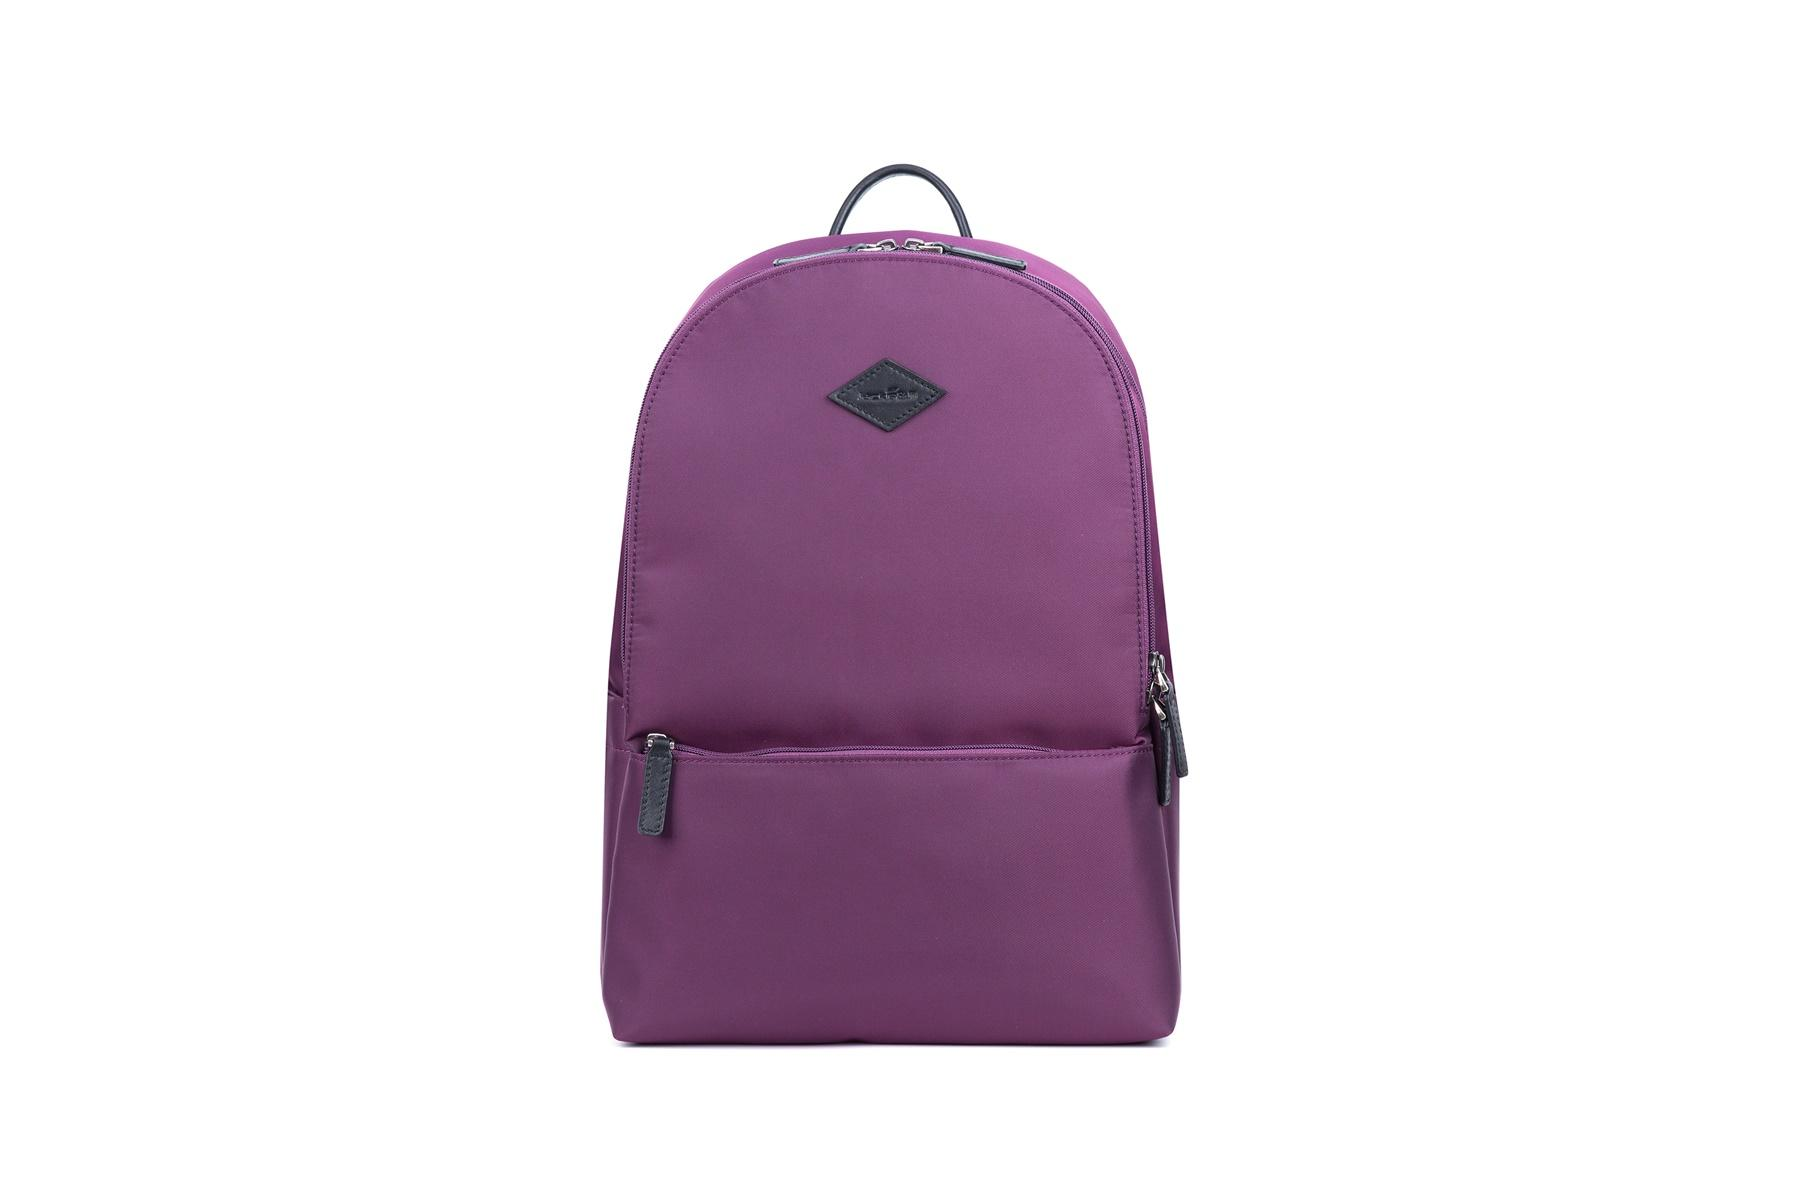 GF bags large capacity adult backpacks rope for student